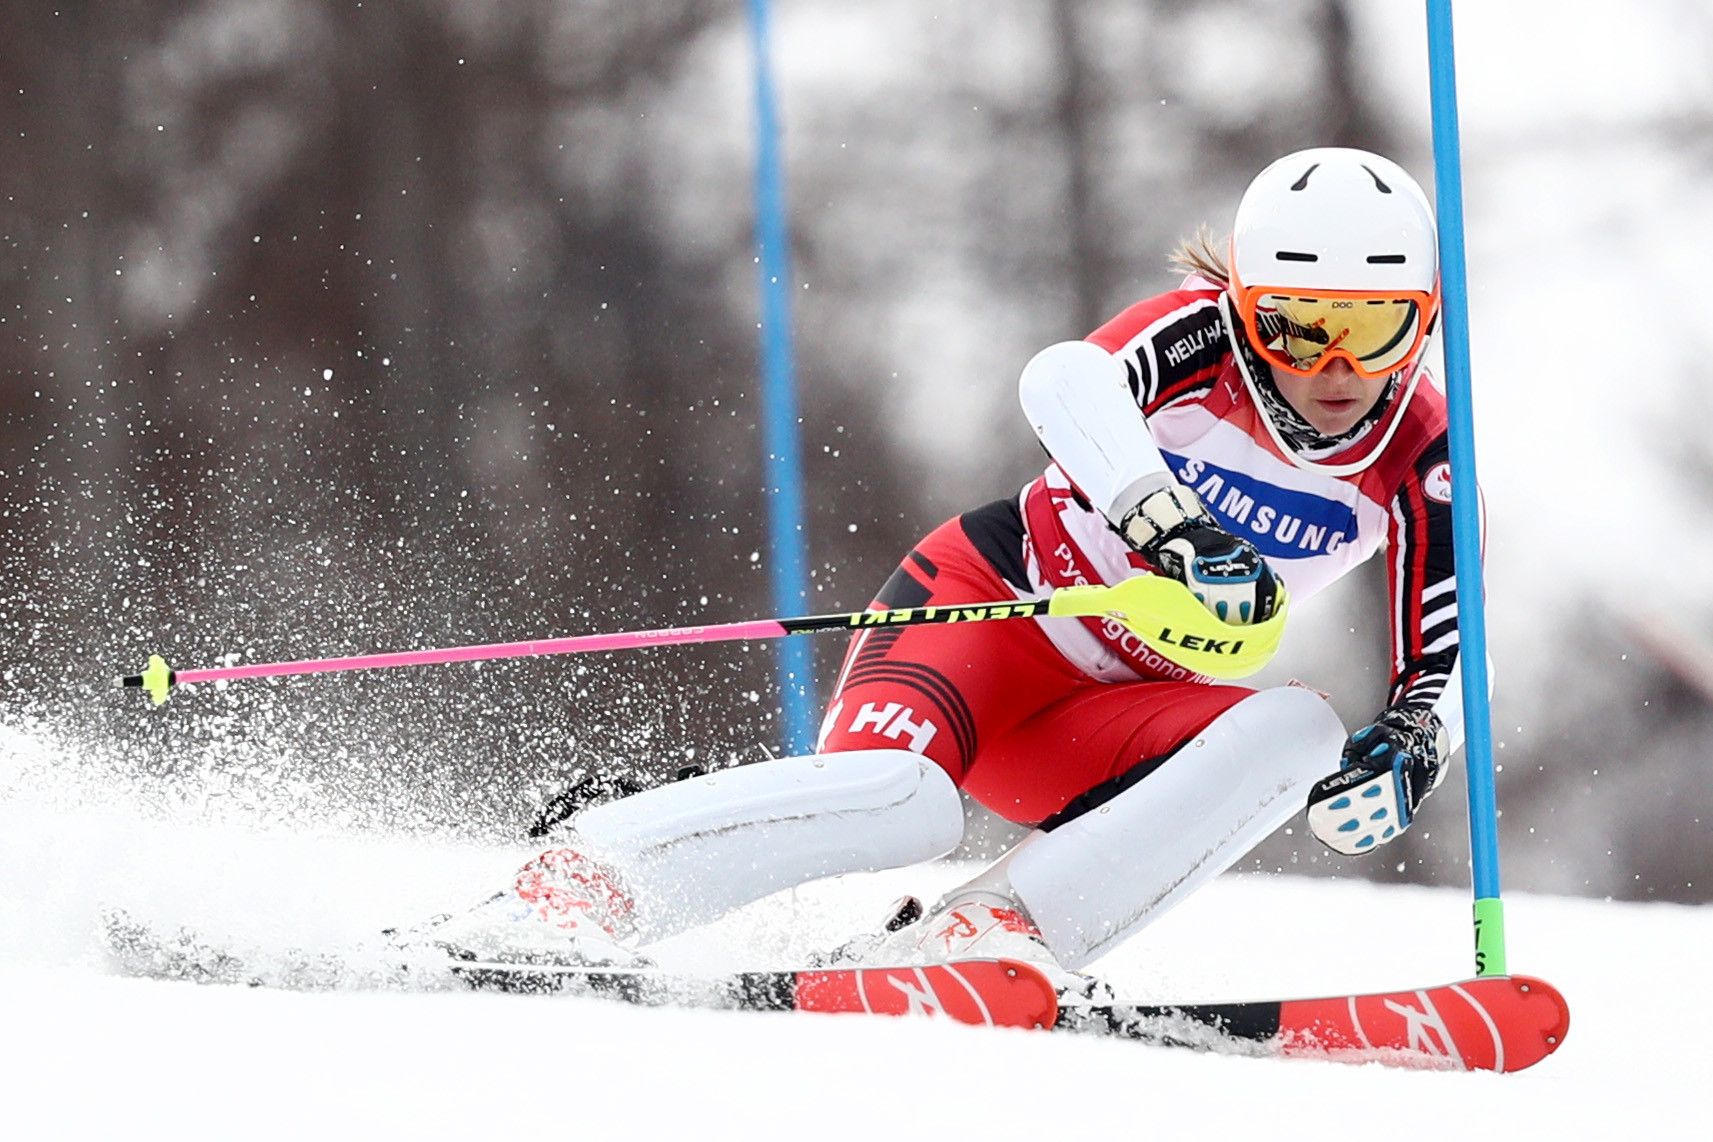 Mollie Jepsen will receive the best female athlete of the year award at the ceremony in Calgary ©Getty Images